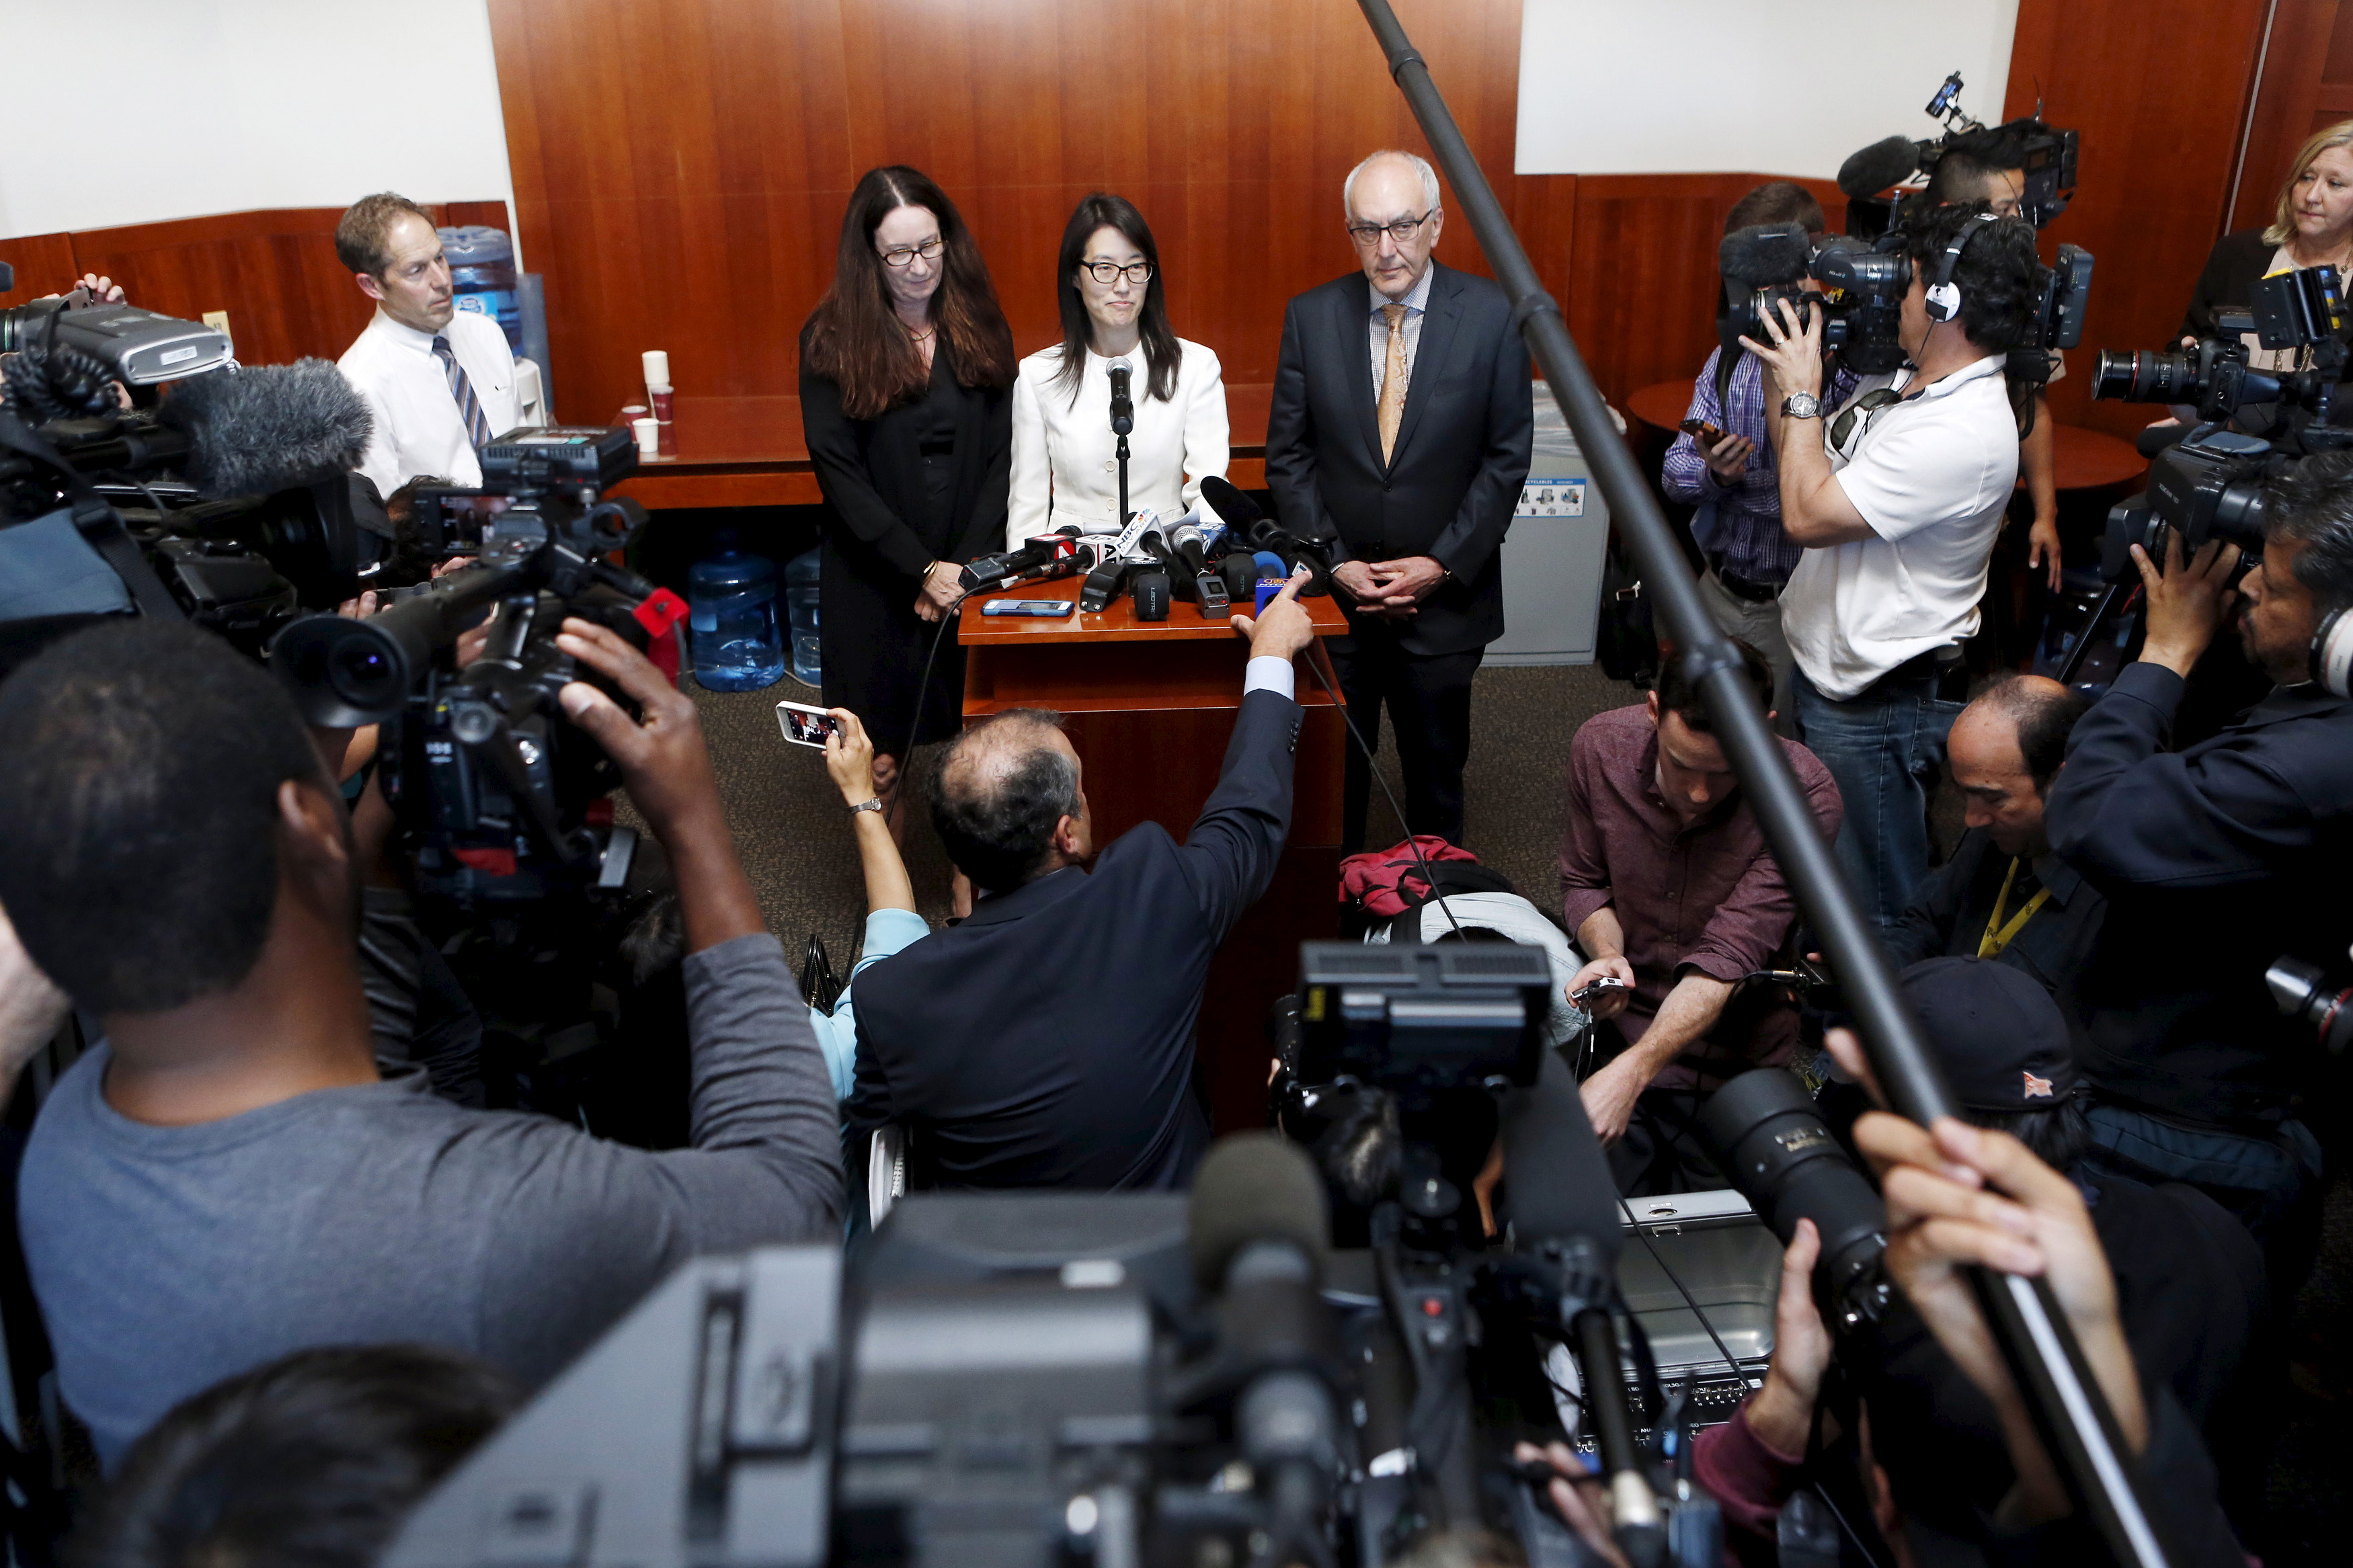 Ellen Pao speaks to the media after losing in her high profile gender discrimination lawsuit against venture capital firm Kleiner, Perkins, Caufield and Byers in San Francisco